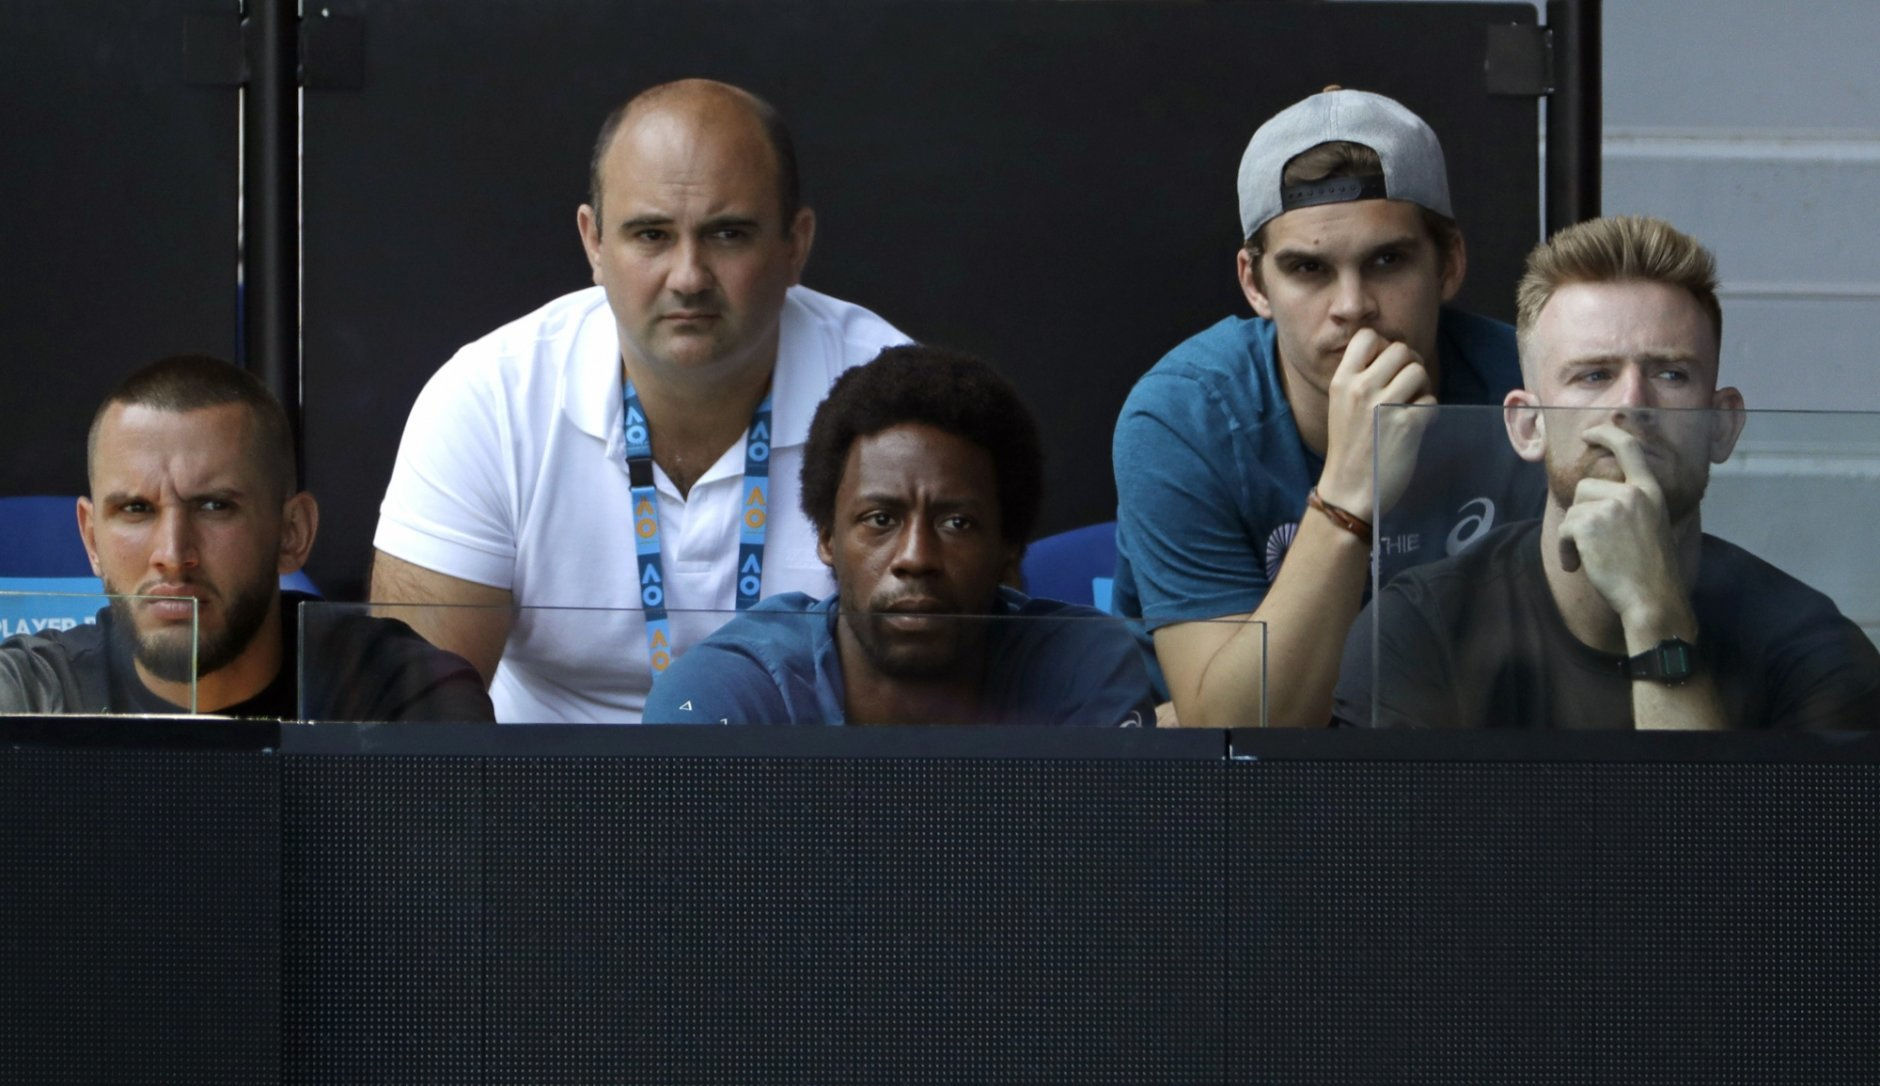 Gael Monfils sits in the players box of Ukraine's Elina Svitolina during her quarterfinal match against Japan's Naomi Osaka at the Australian Open tennis championships in Melbourne, Australia, Wednesday, Jan. 23, 2019. (AP Photo/Mark Schiefelbein)